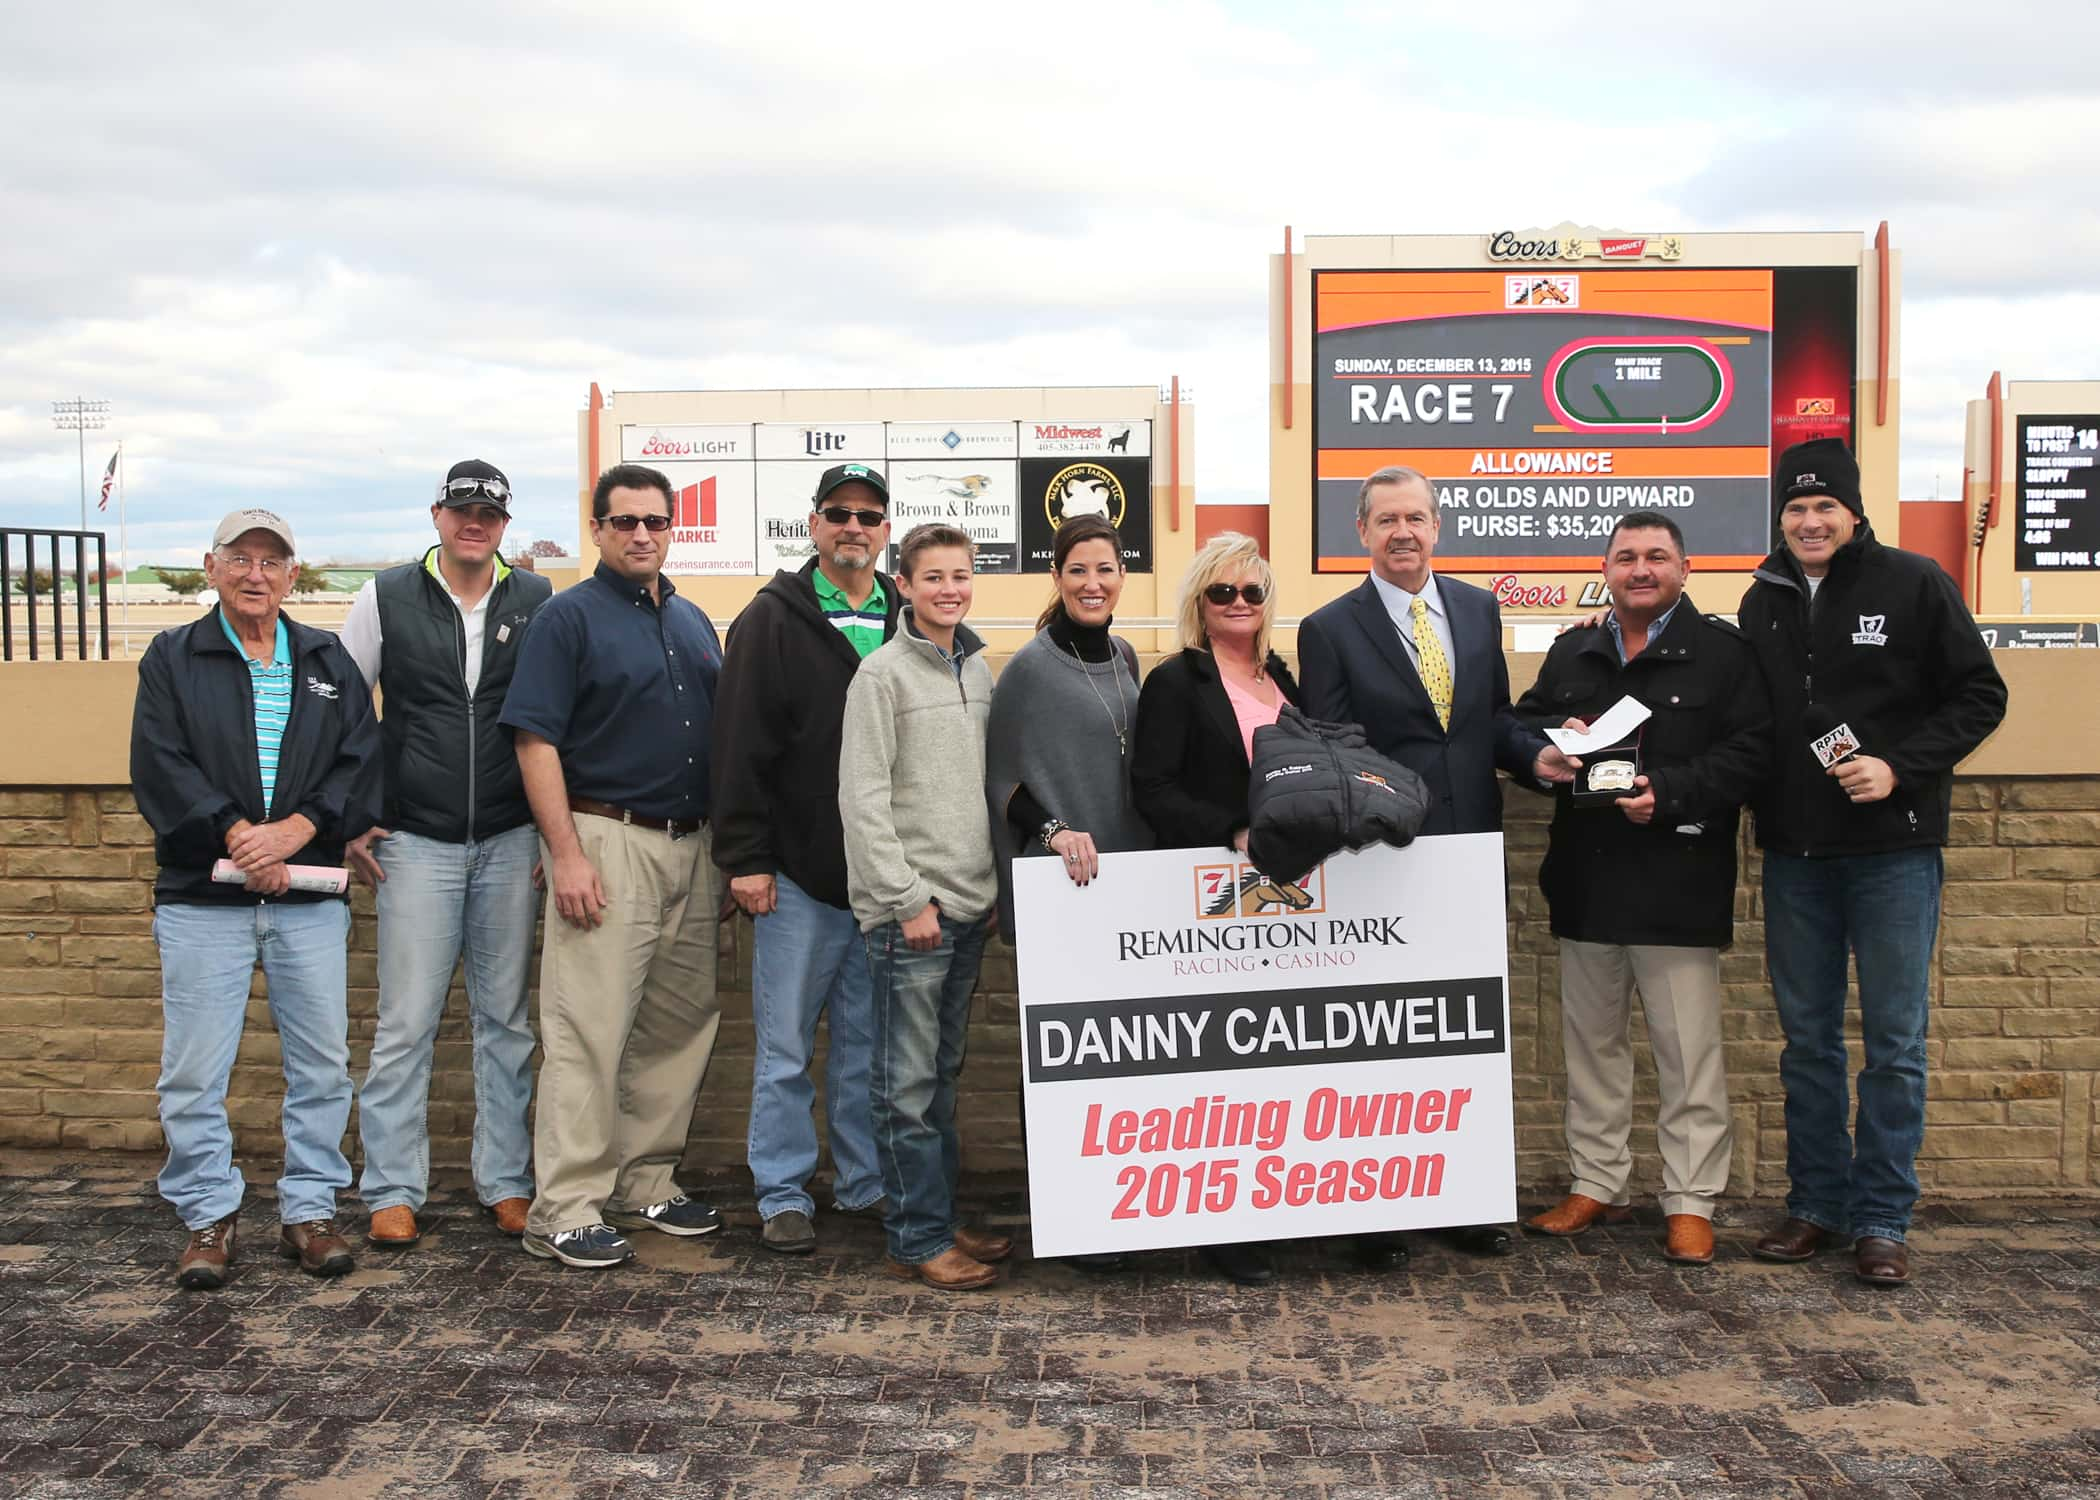 2015 Leading Owner Danny Caldwell Presentation at Remington Park - Photo Credit: Dustin Orona Photography